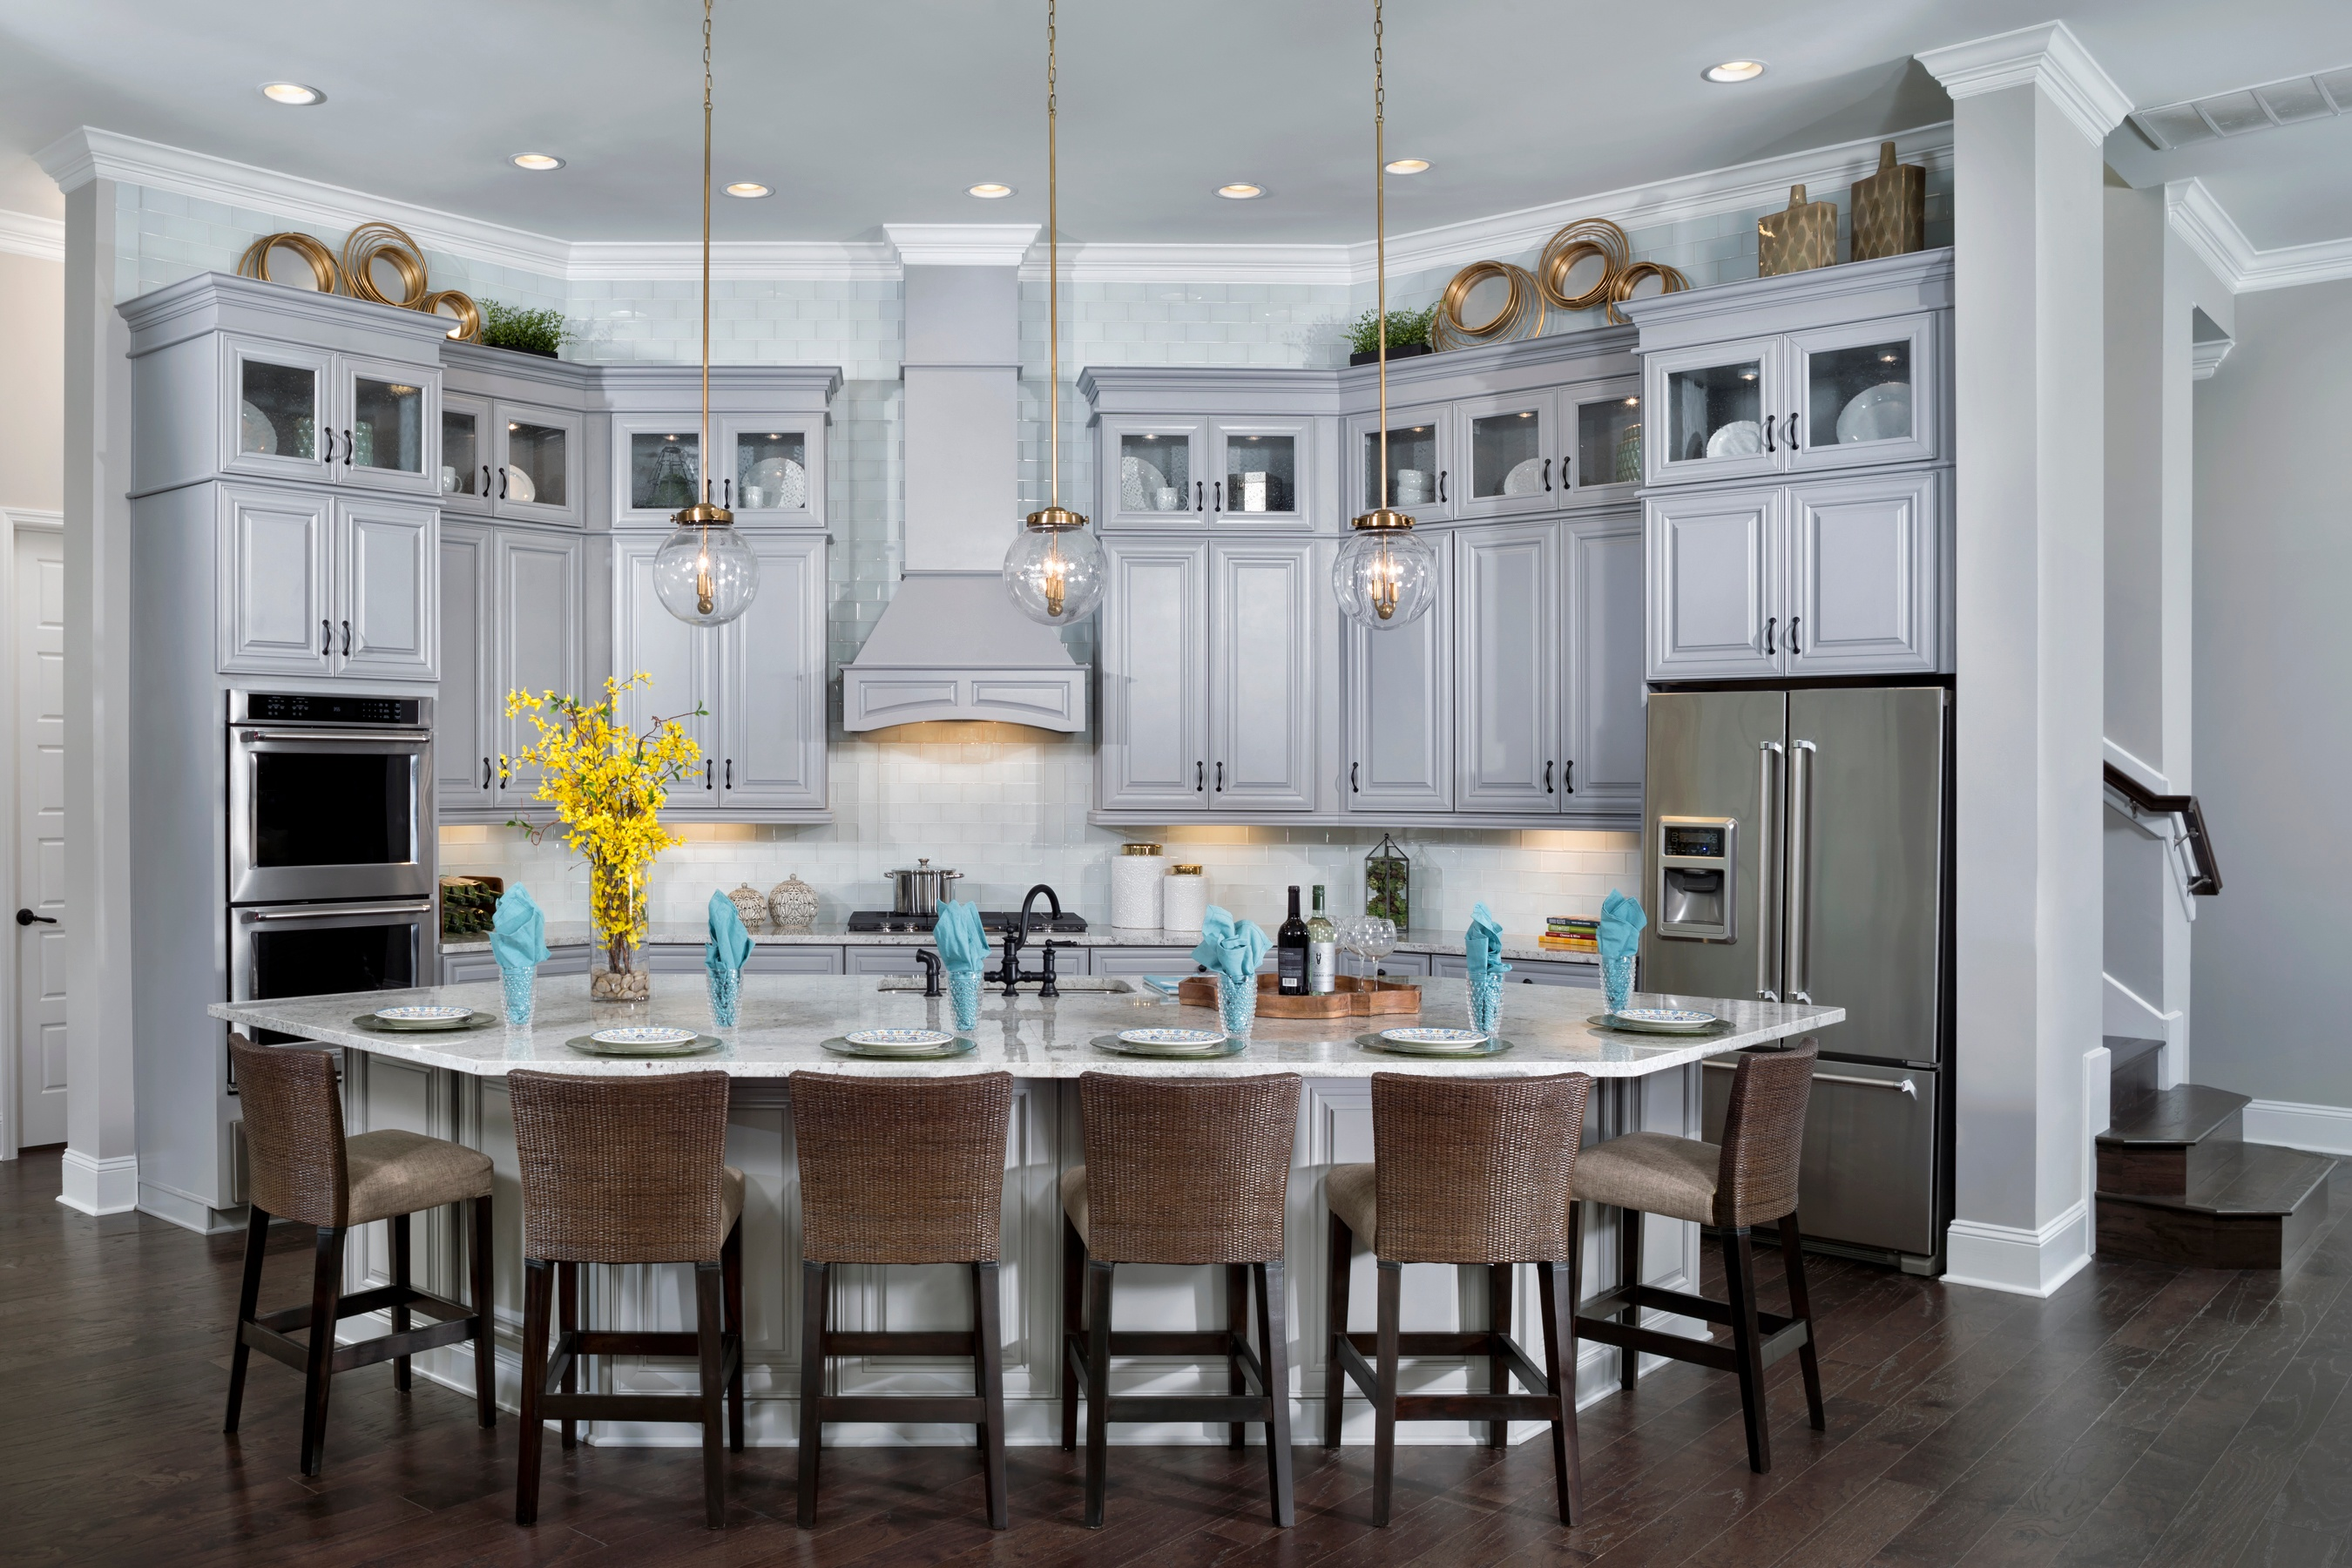 LaRocque Kitchen by David Weekley Homes in The Island